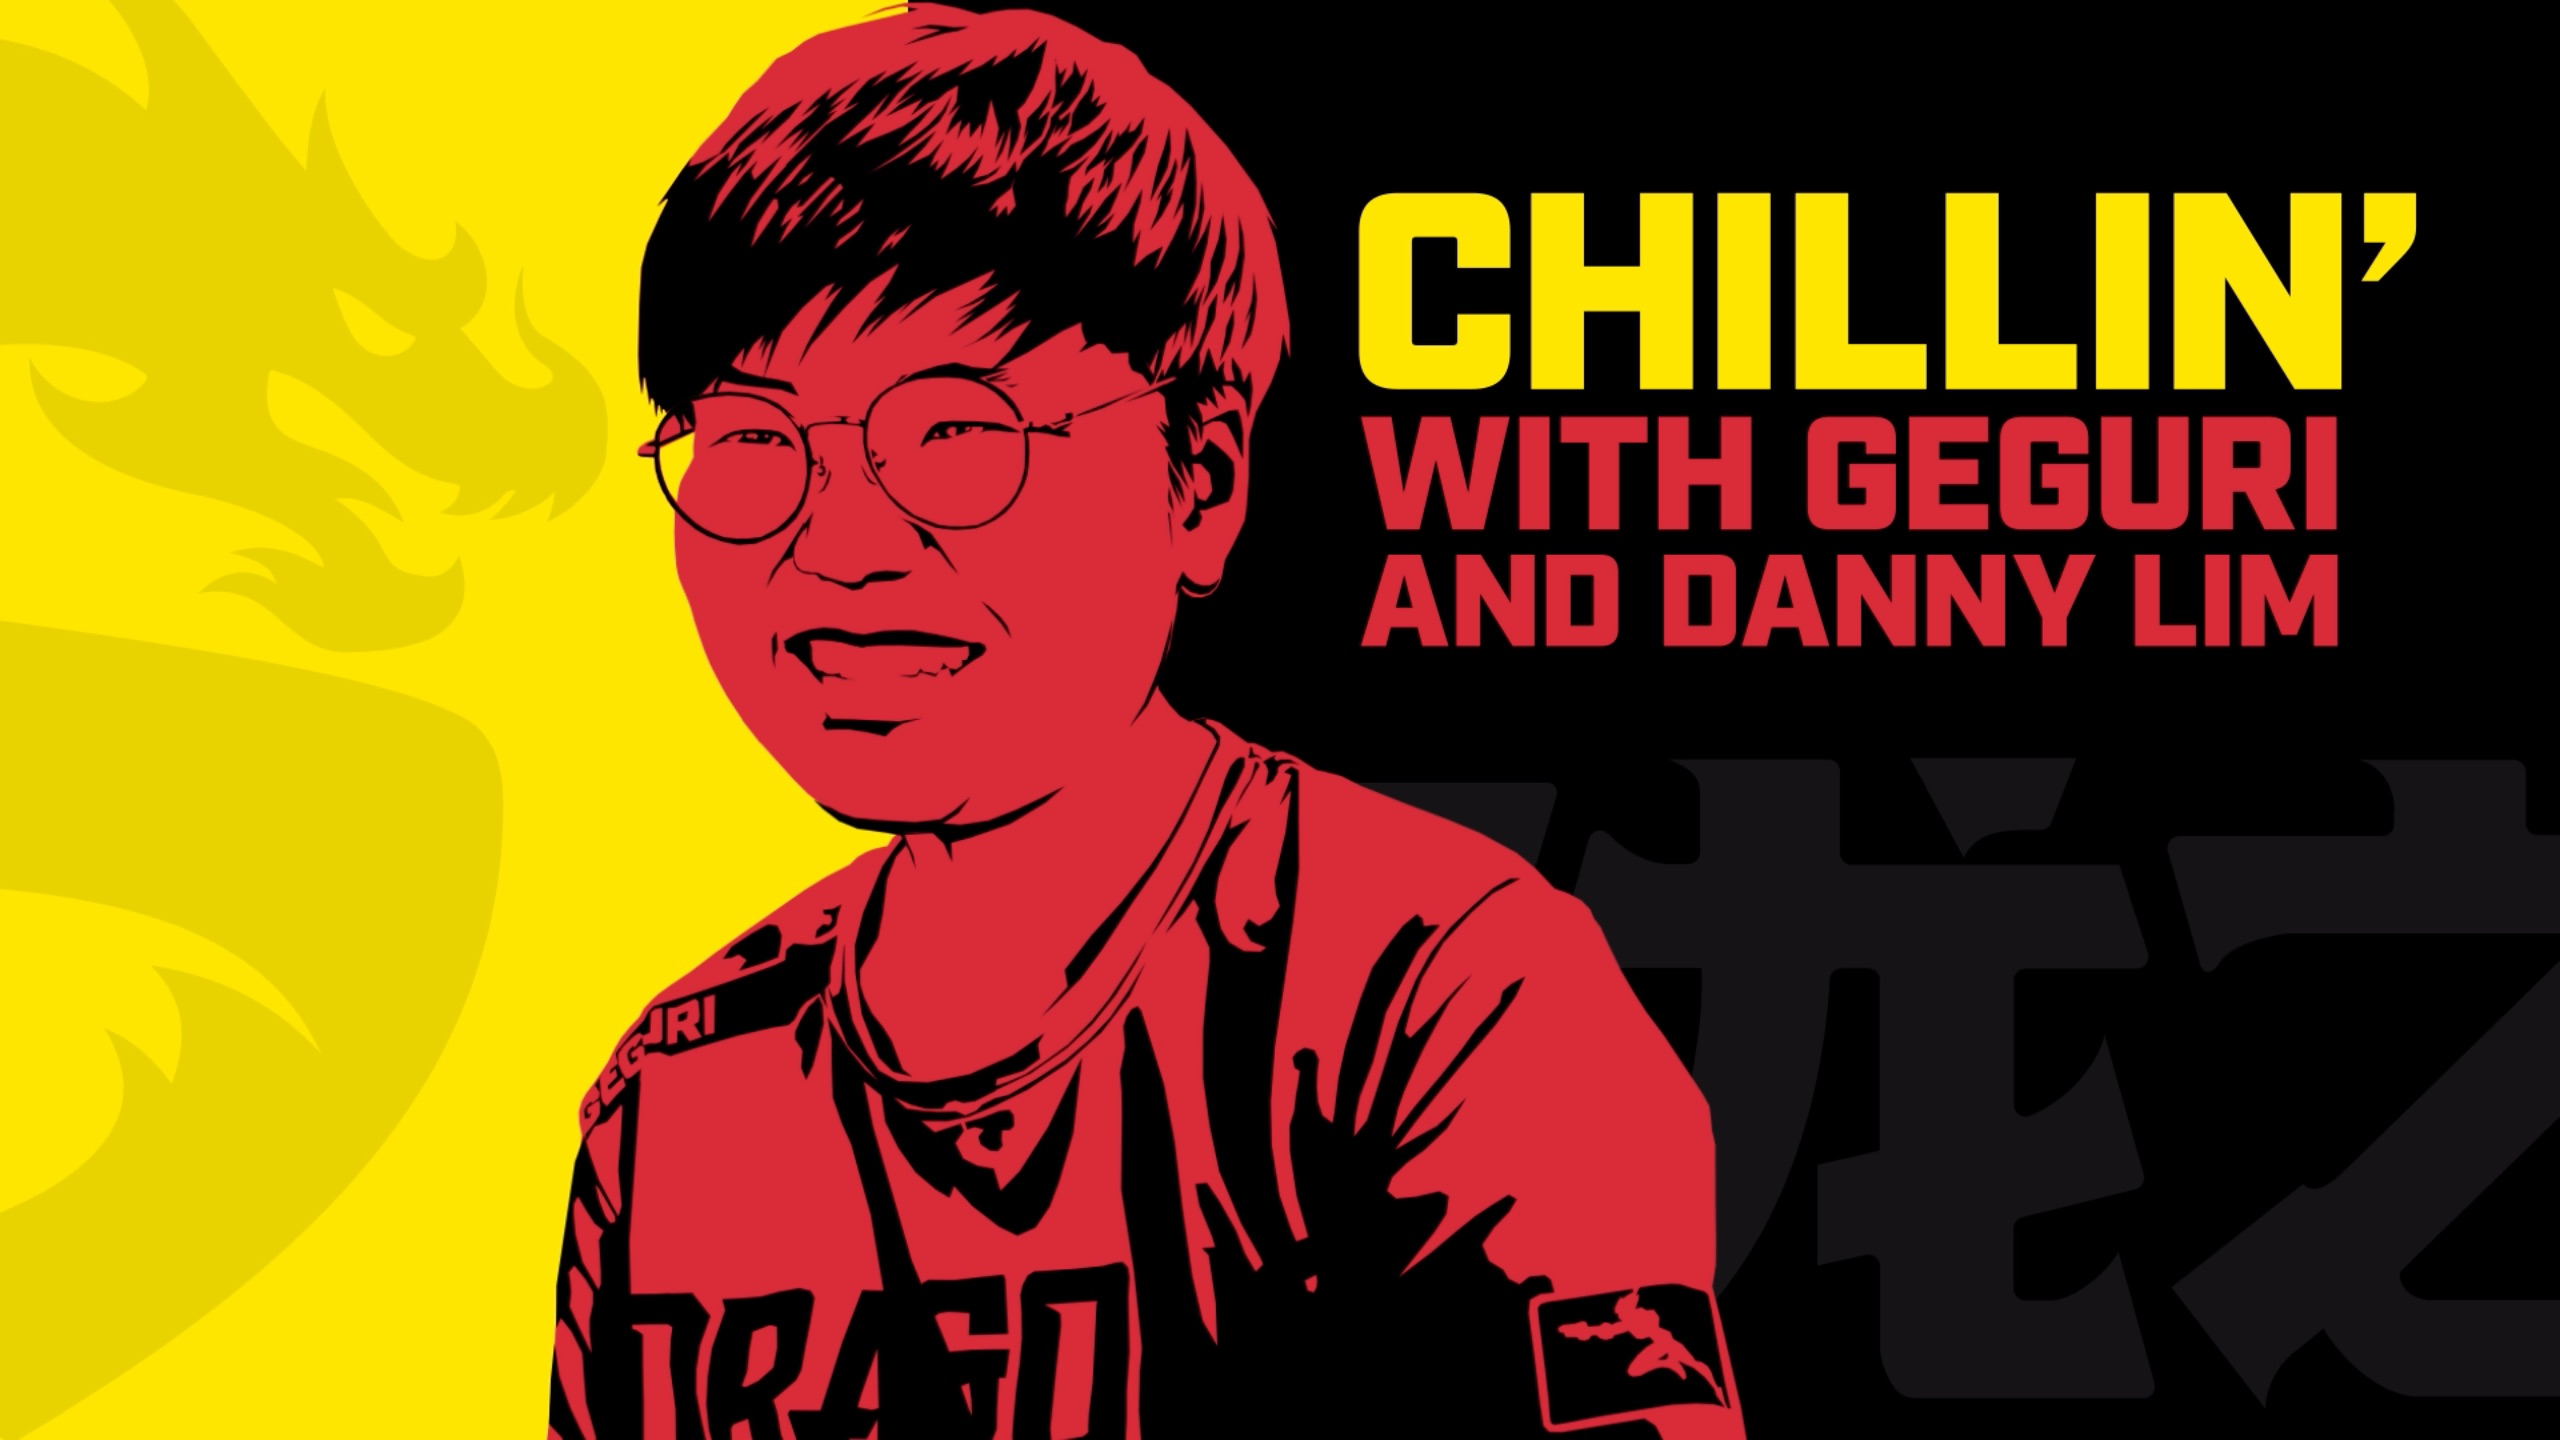 Chillin' with Geguri and Danny Lim